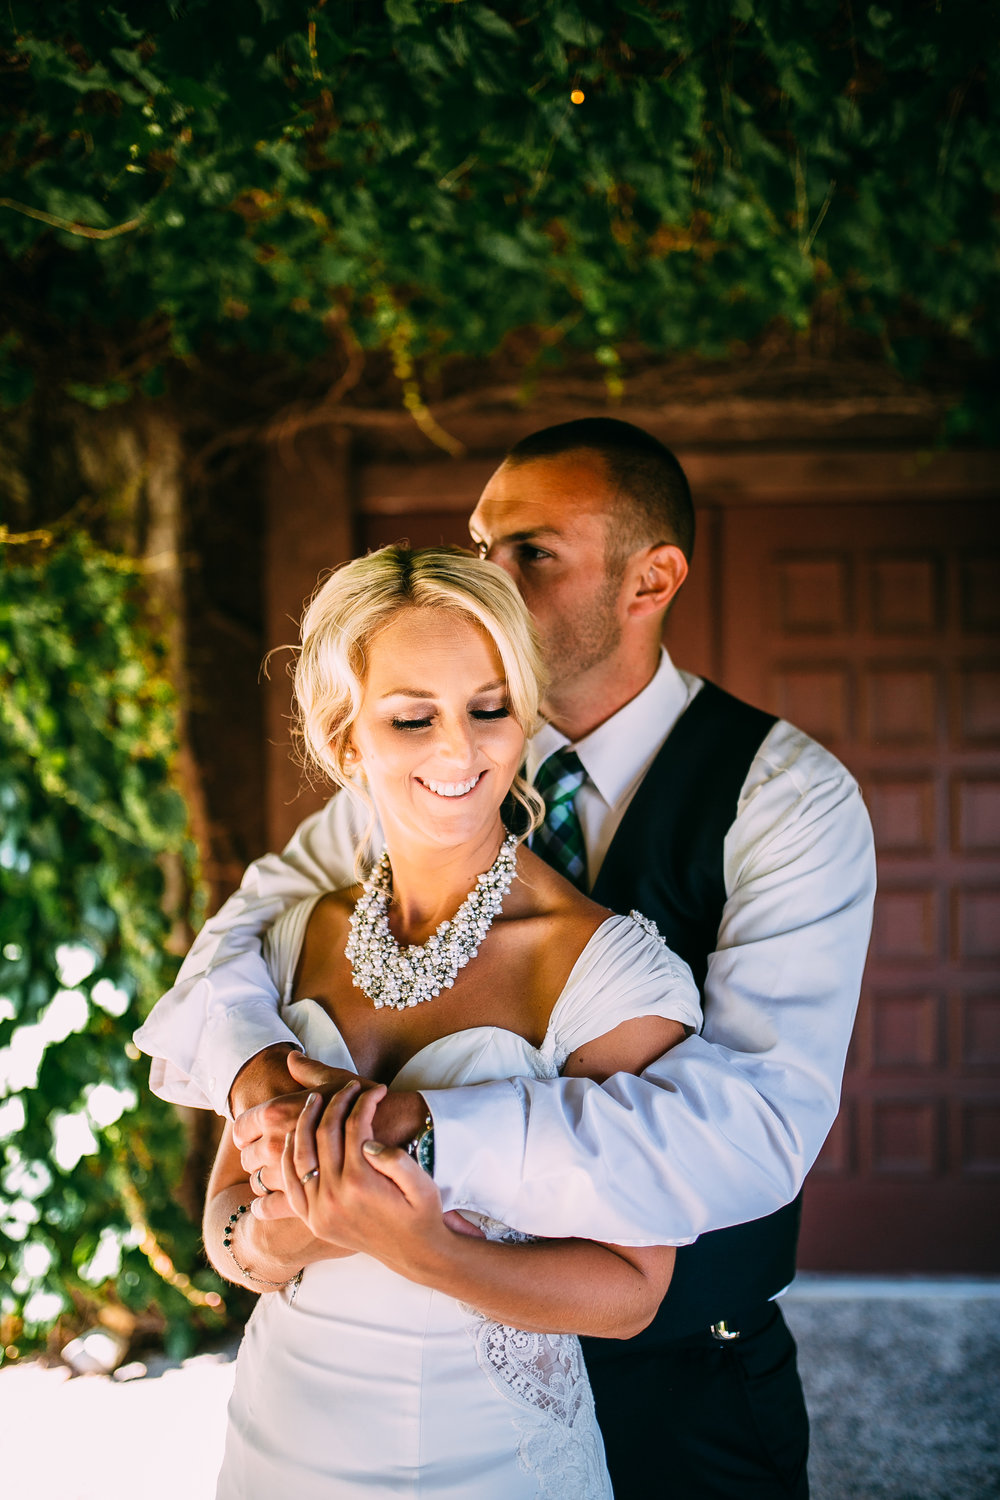 Bridgett-Chris-Portraits-Michigan-Wedding-Photographer-216.jpg